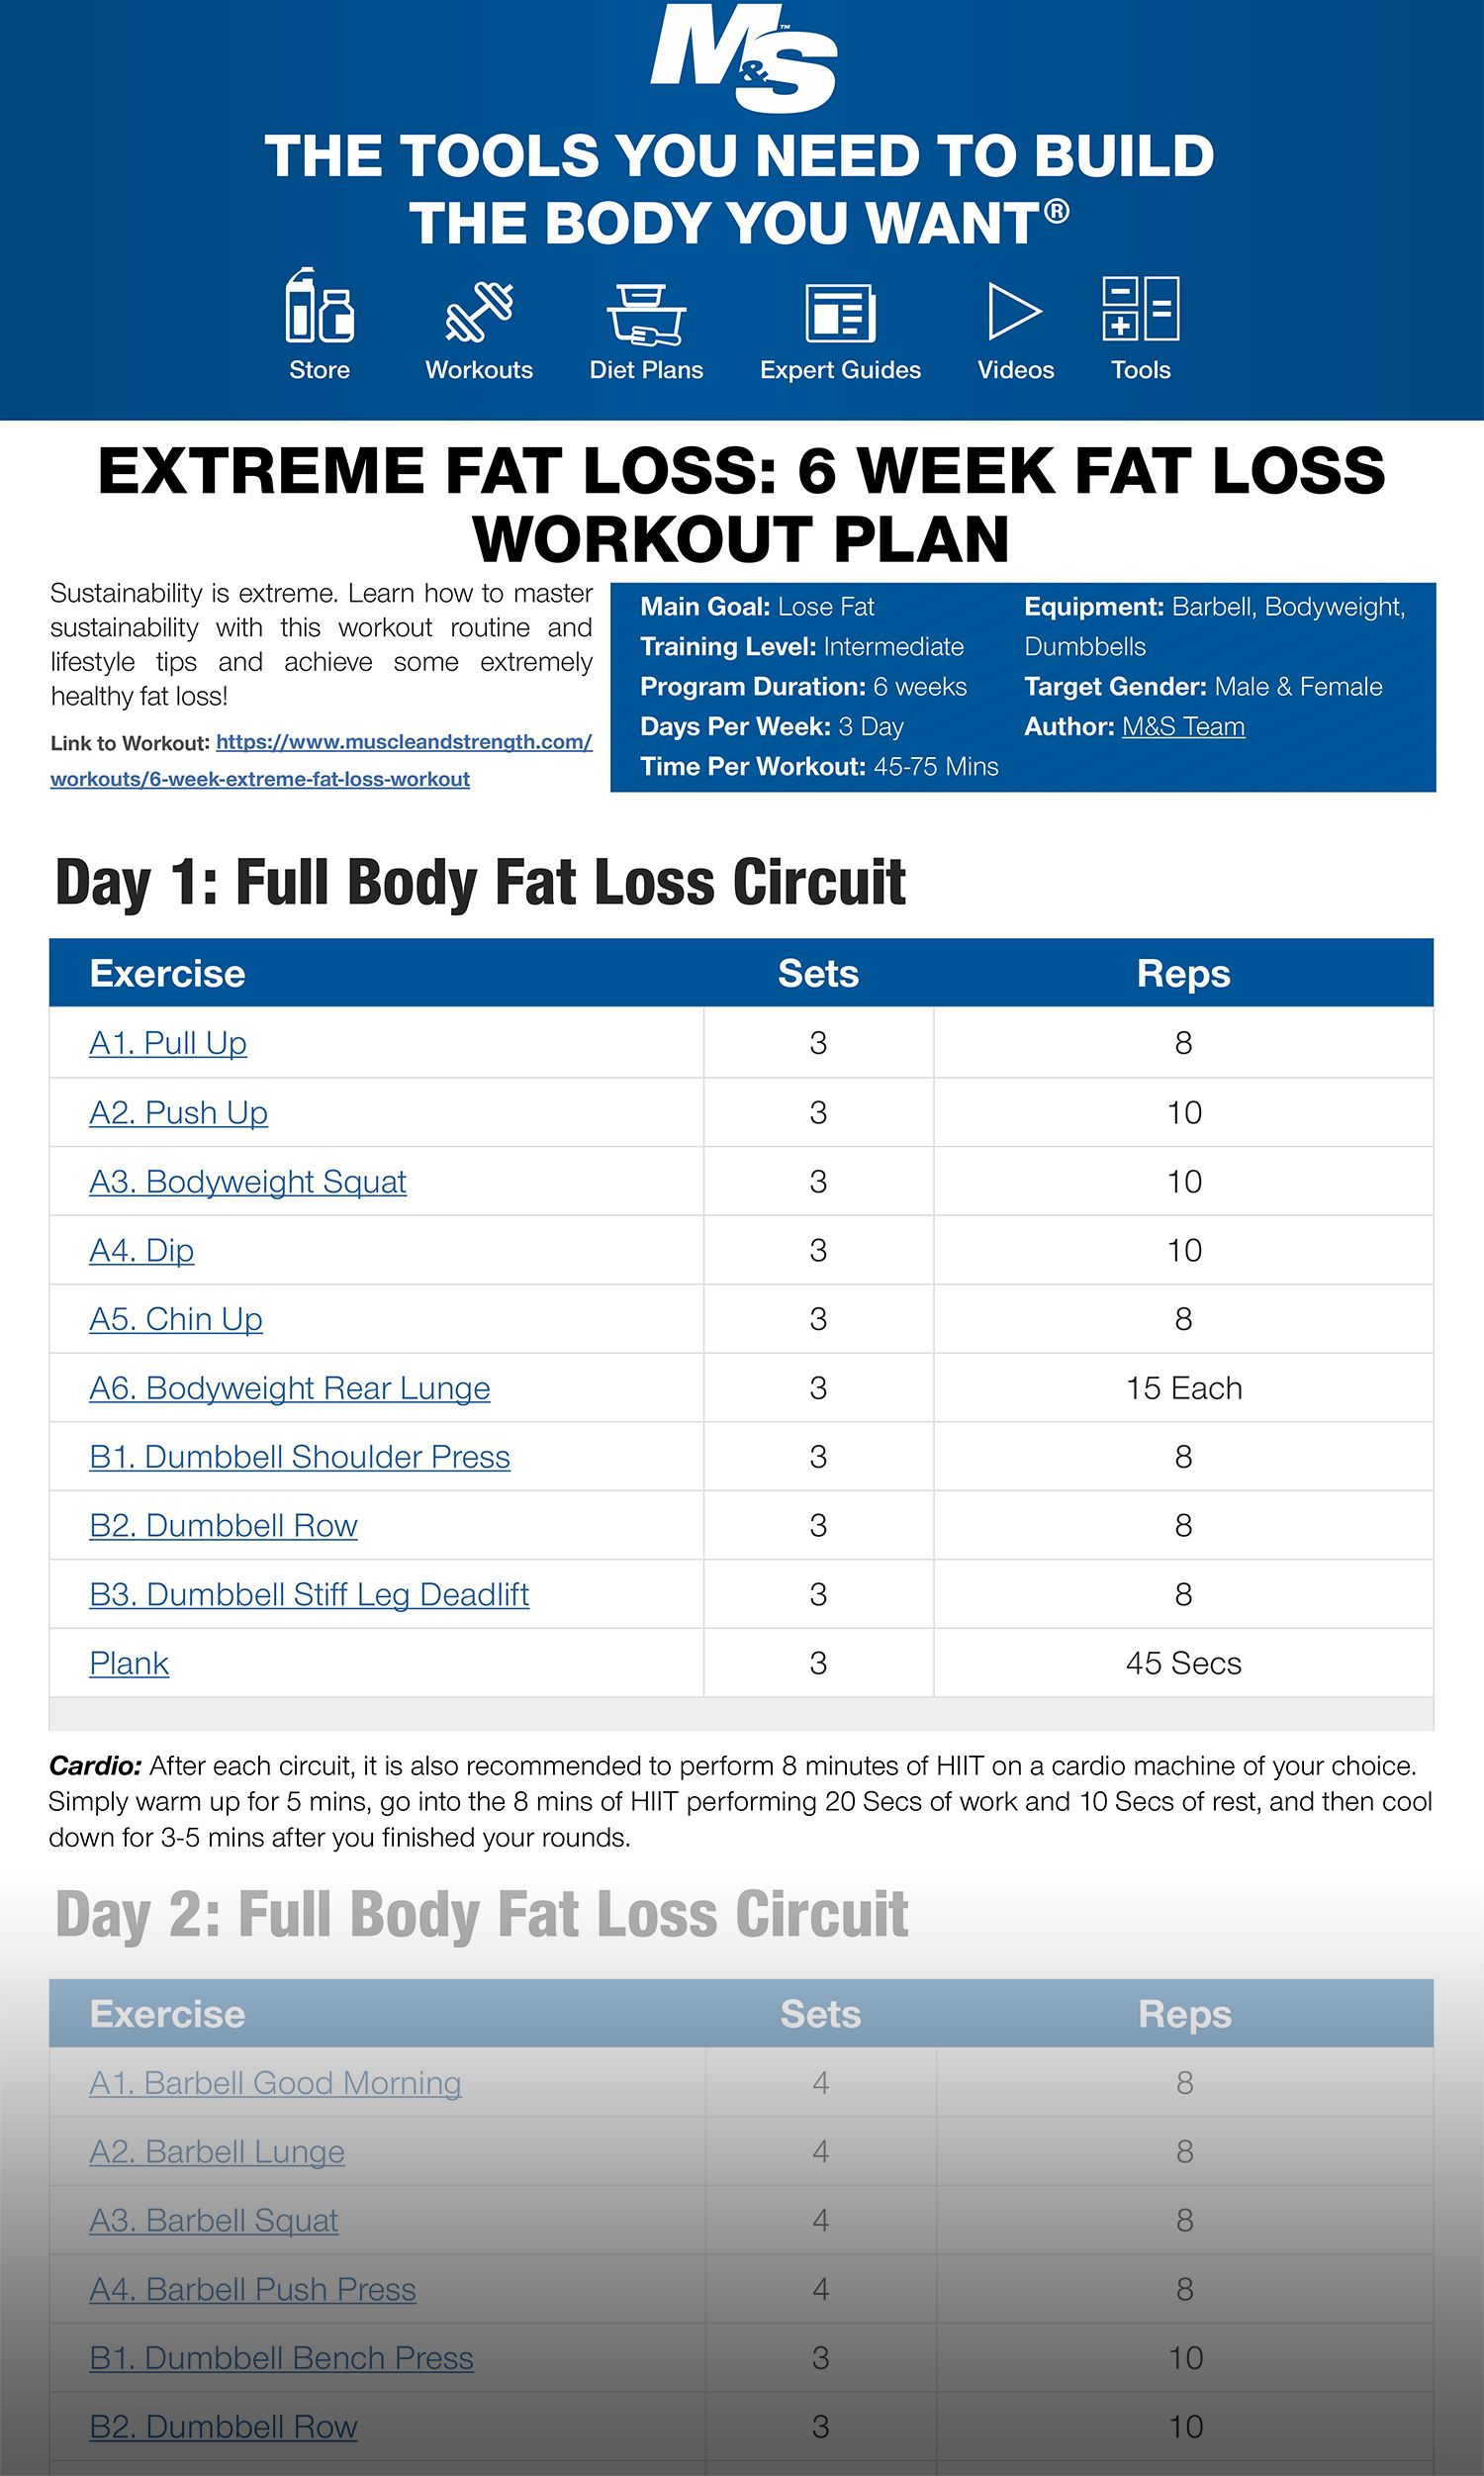 Extreme Fat Loss 6 Week Fat Loss Workout Plan Sustainability is extreme Learn how to master sustainability with this workout routine and lifestyle tips and achieve some e...